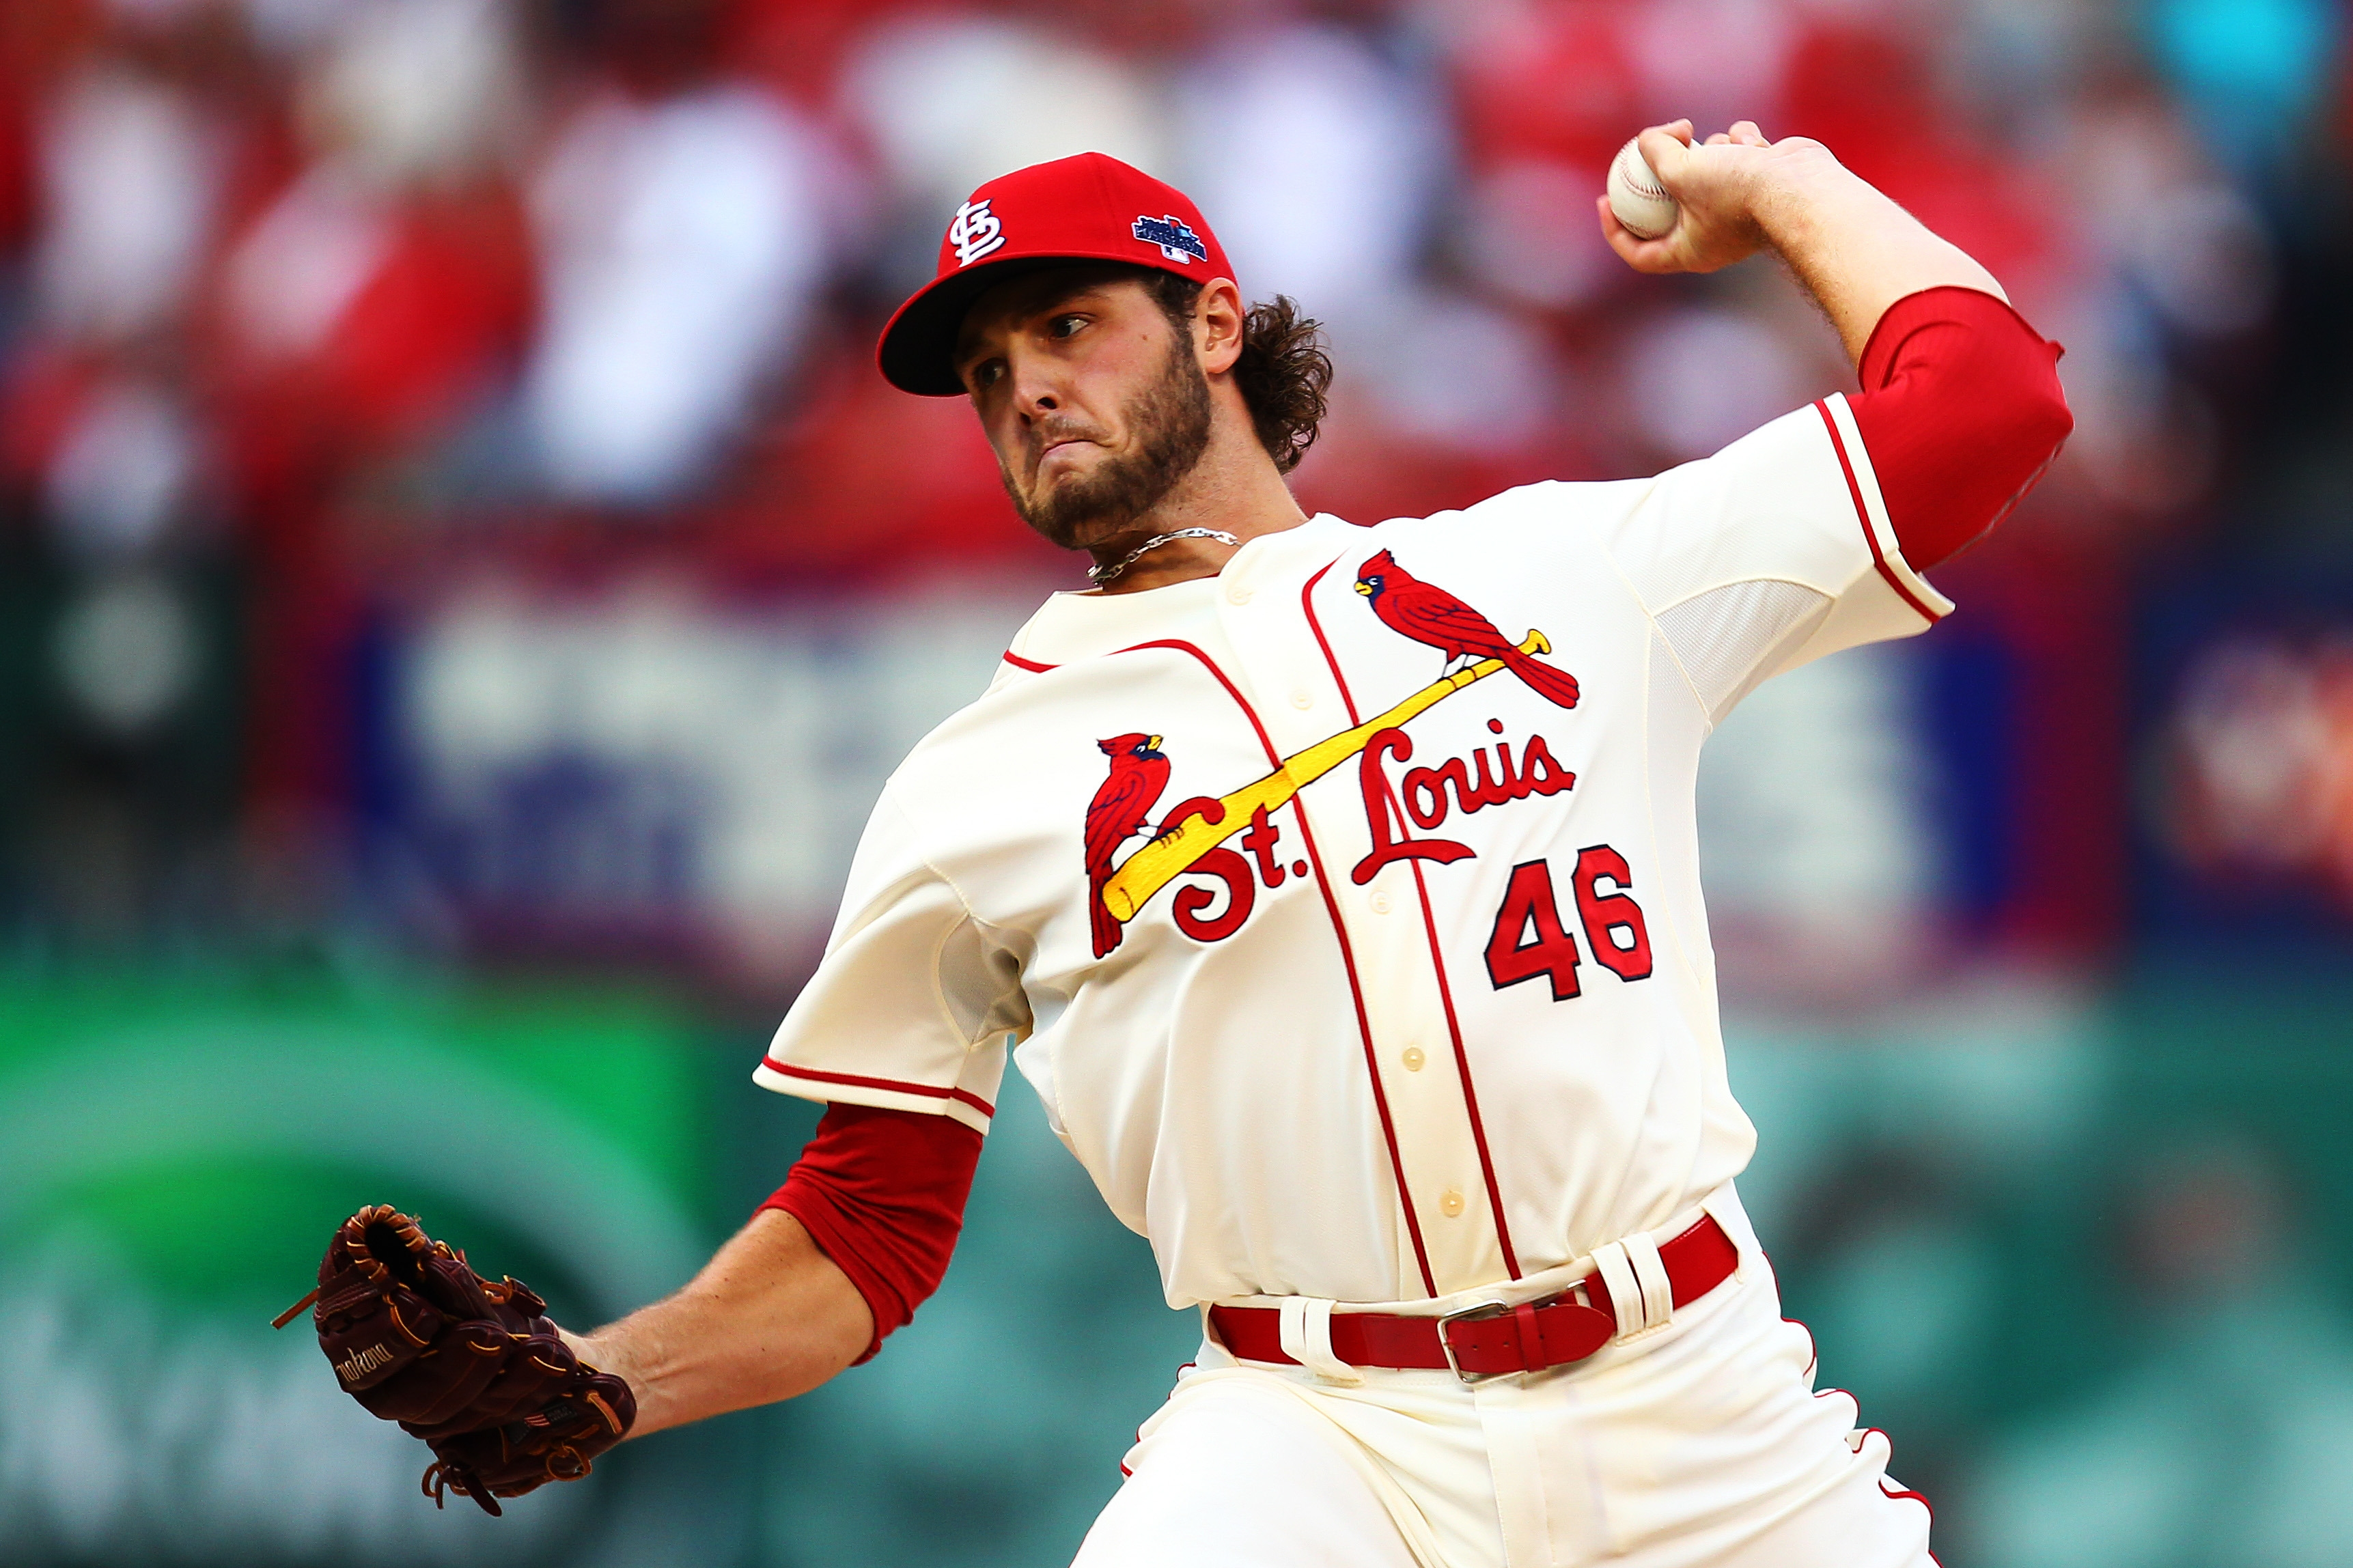 Cardinals' reliever Kevin Siegrist, a Lewiston native, is hoping the Sabres can turn things around.